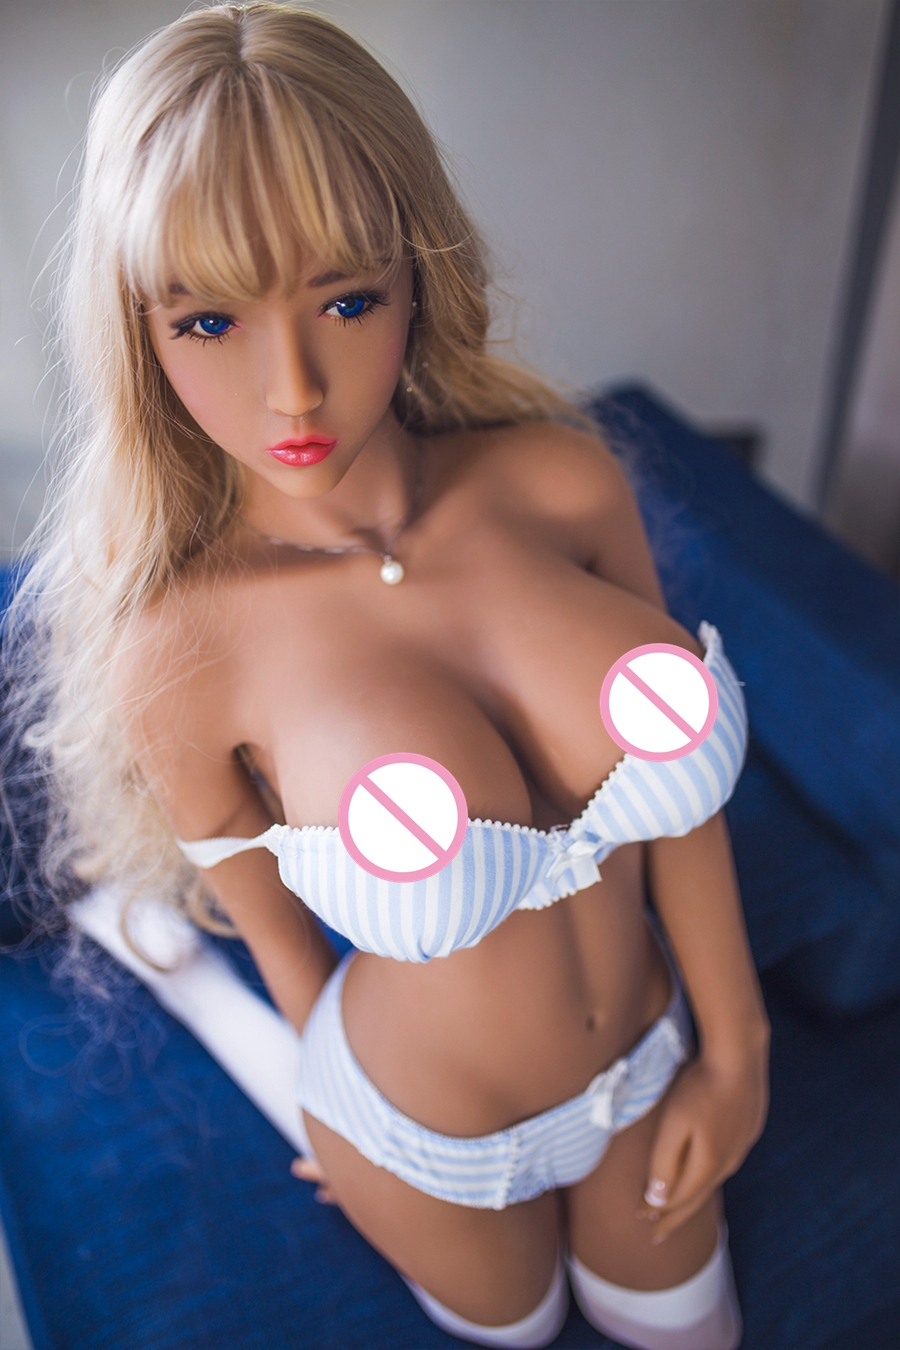 Pinklover 140cm real feeling sexy girl sex doll big breast vagina full body size silicone sexdoll for male 125cm cute girl pussy sex doll sex girl japan hot sex naked girl open sexy girl full photo page 8